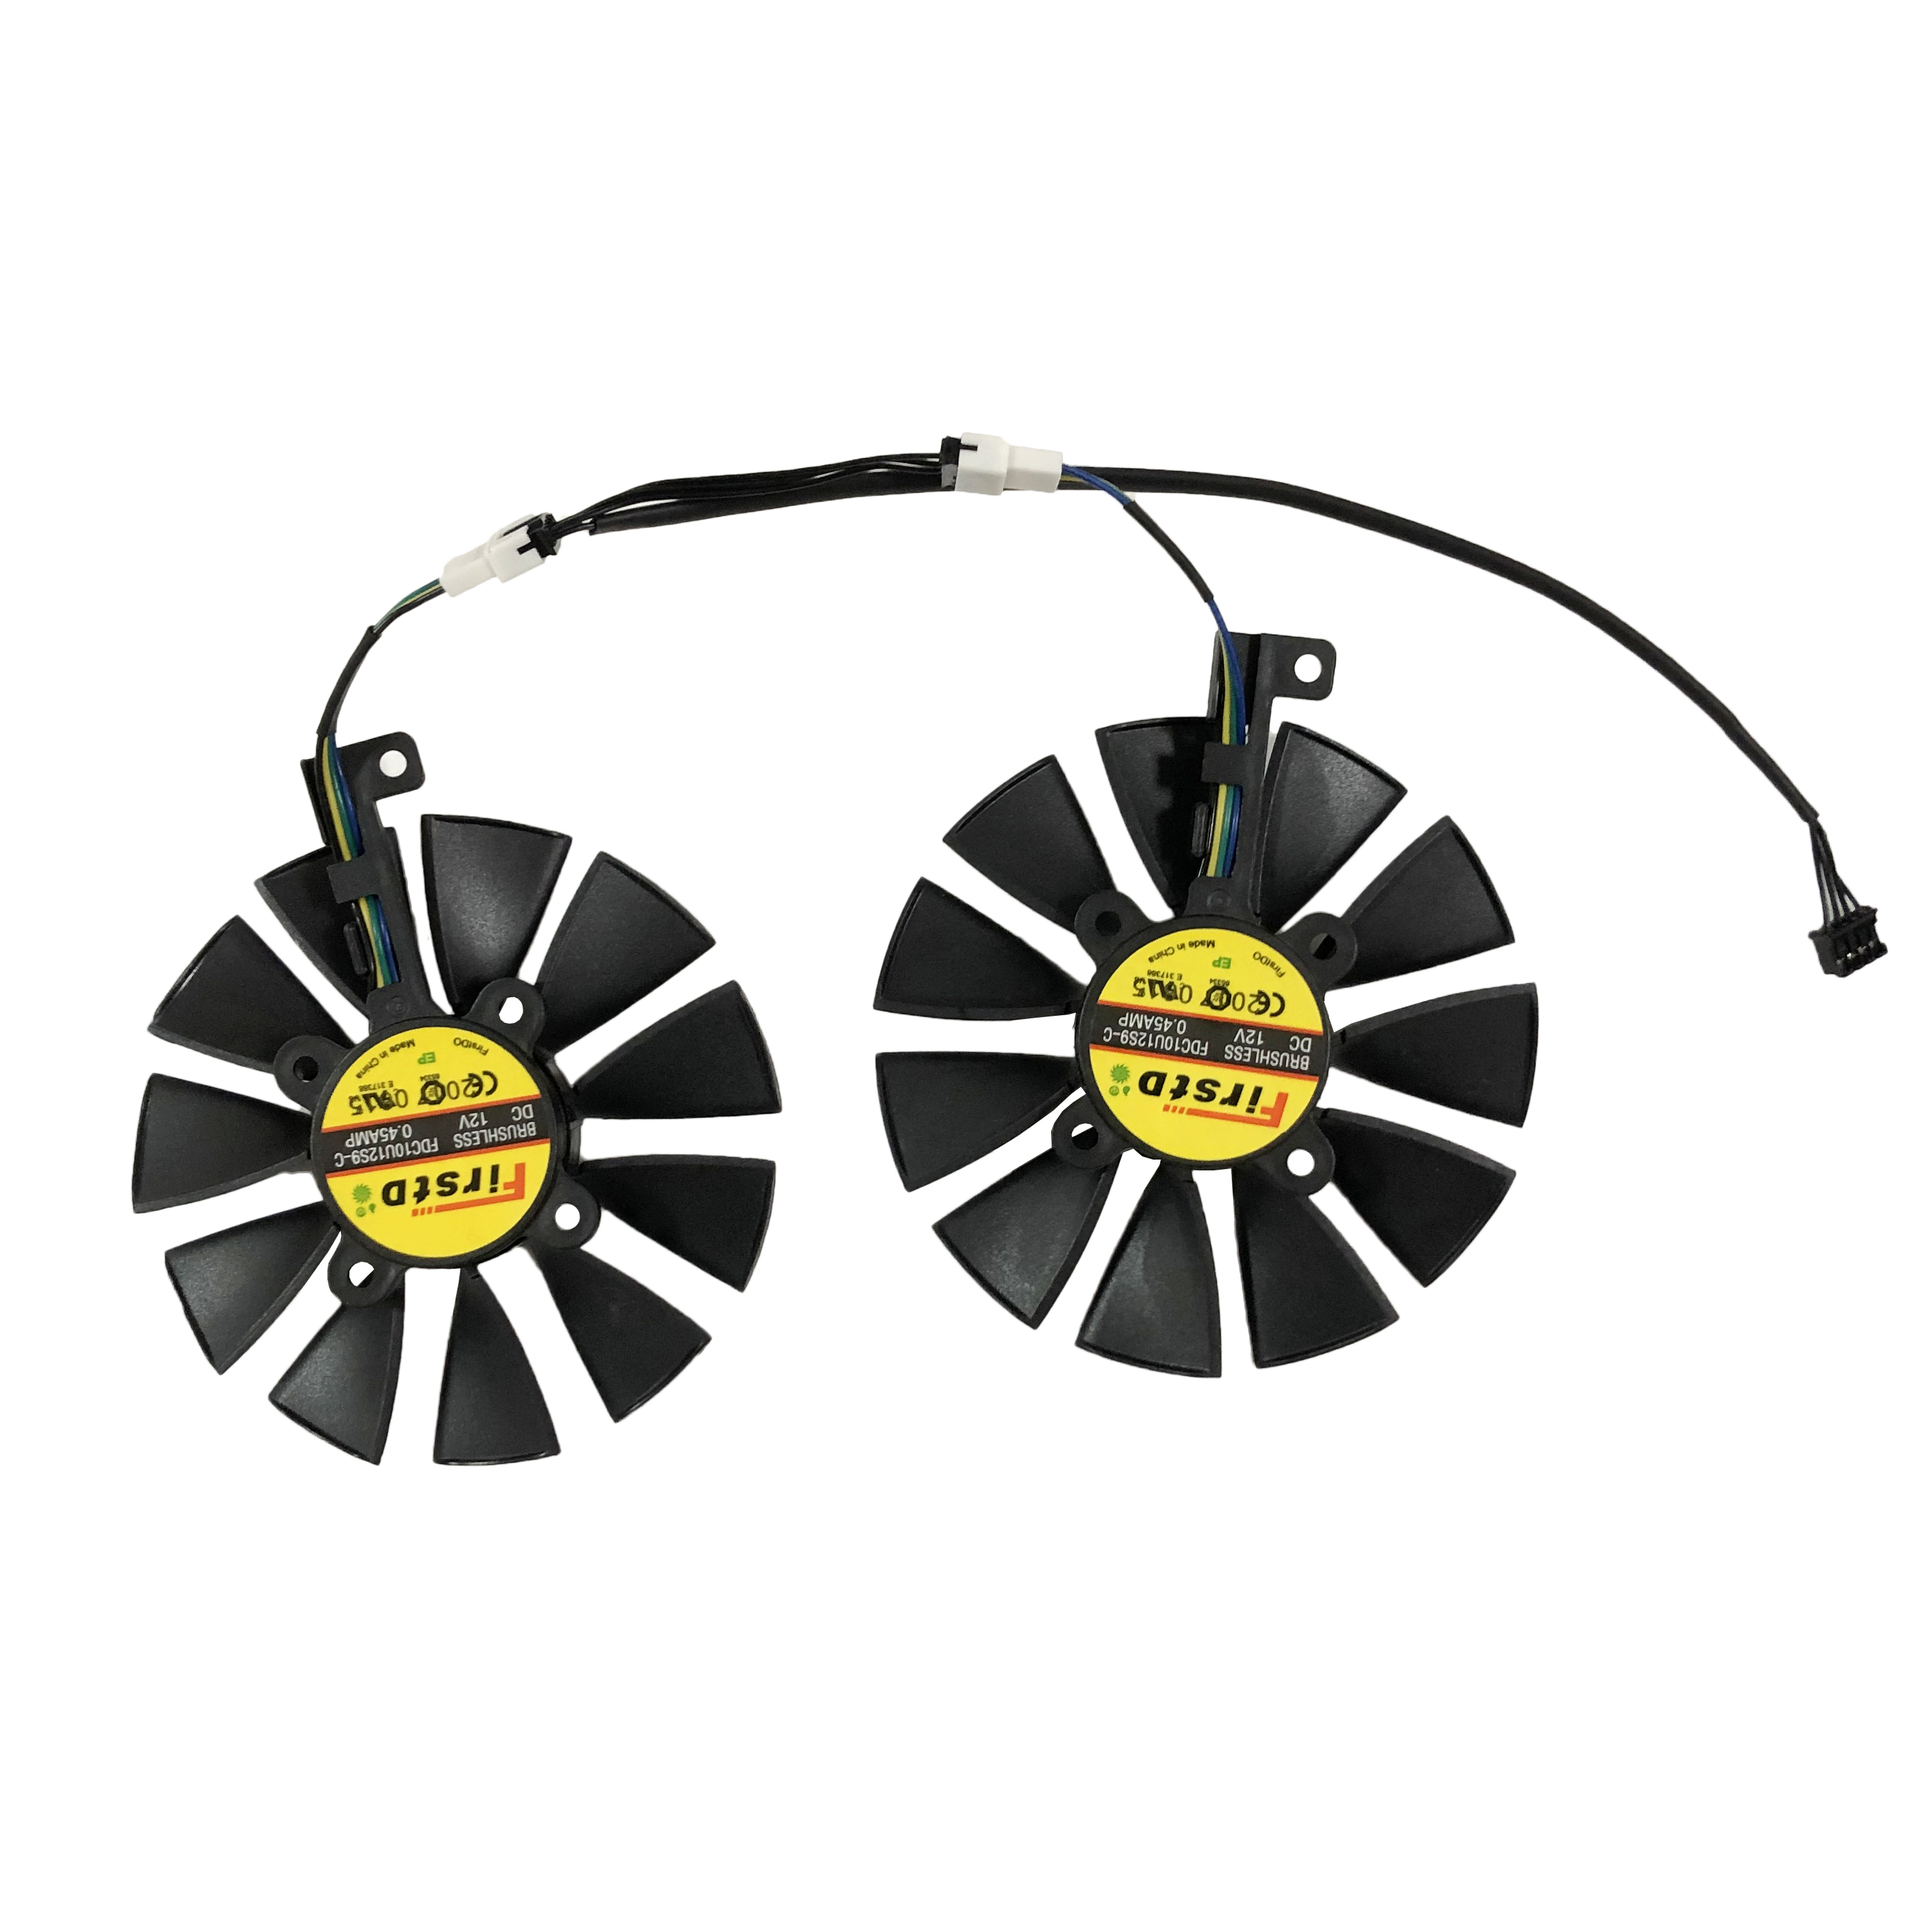 2pcs/set 87mm FDC10U12S9-C EX-RX570 GTX 1060/1070 DUAL GPU Cooler Fan For ASUS AREZ-EX-RX570-8G/4G Video Graphics Card Cooling